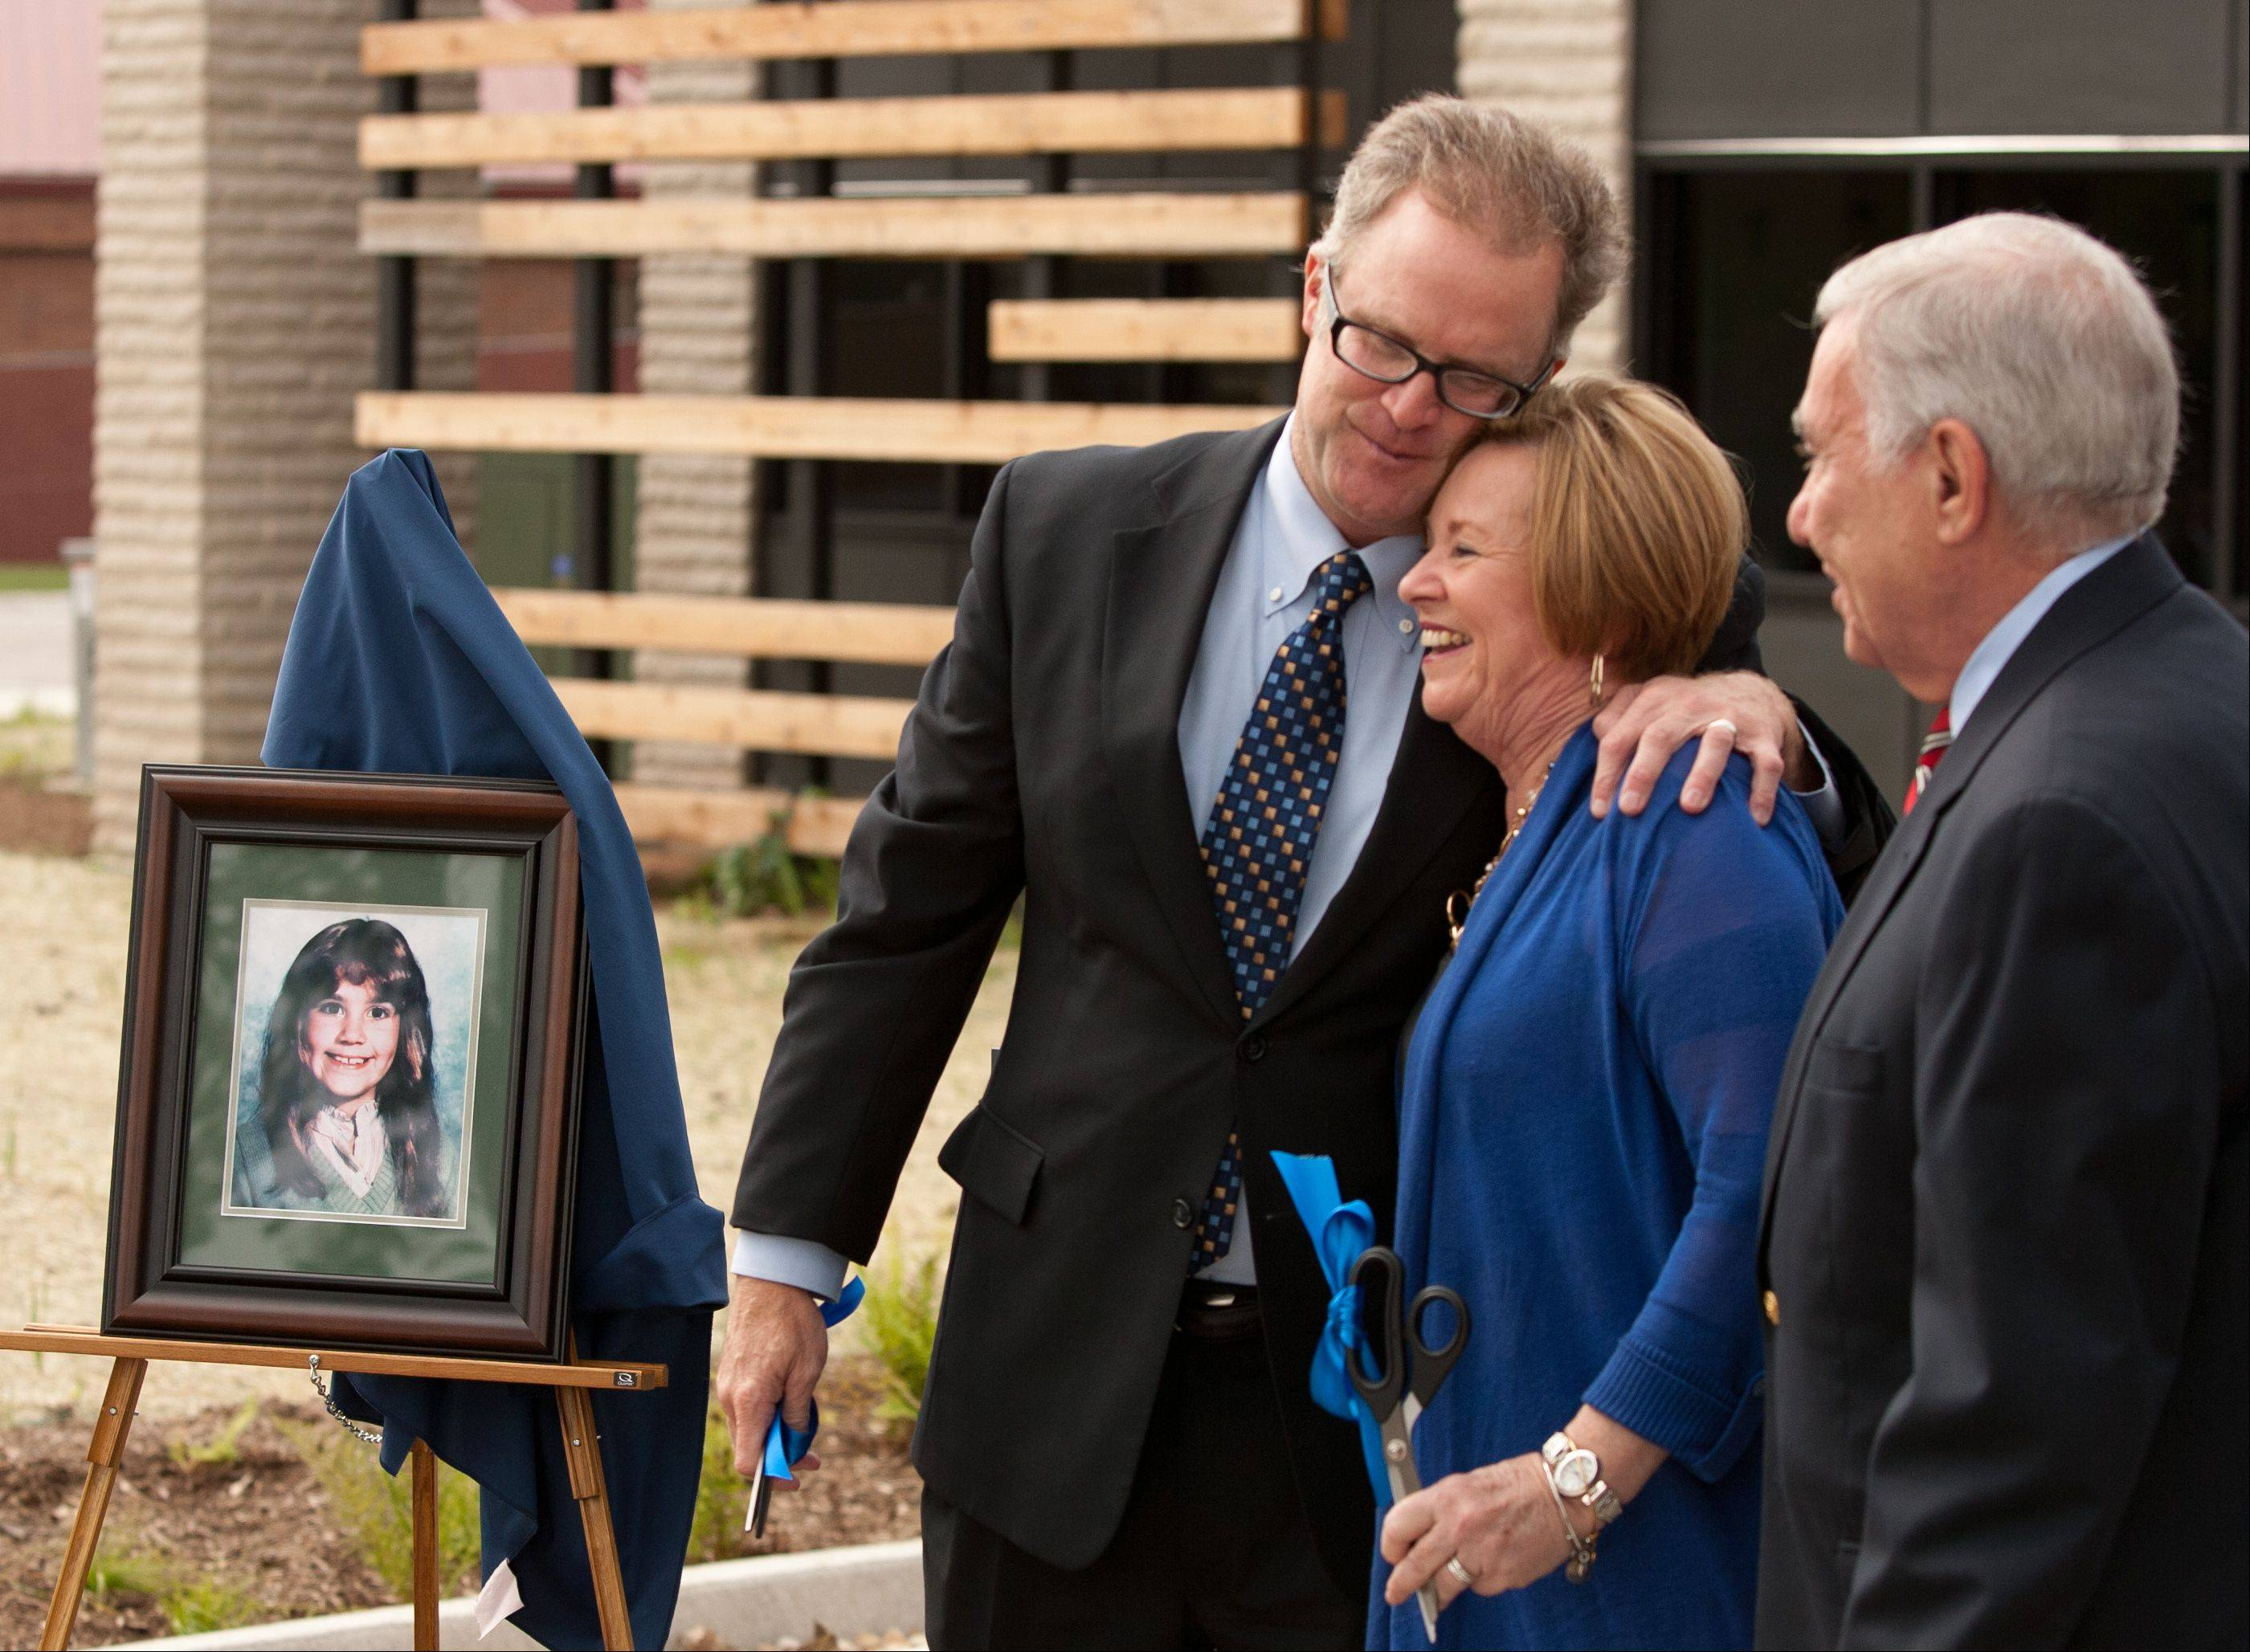 DuPage County Board Chairman Dan Cronin embraces Pat Nicarico during the dedication of the new Jeanine Nicarico Children's Advocacy Center in Wheaton. Tom Nicarico is at right.